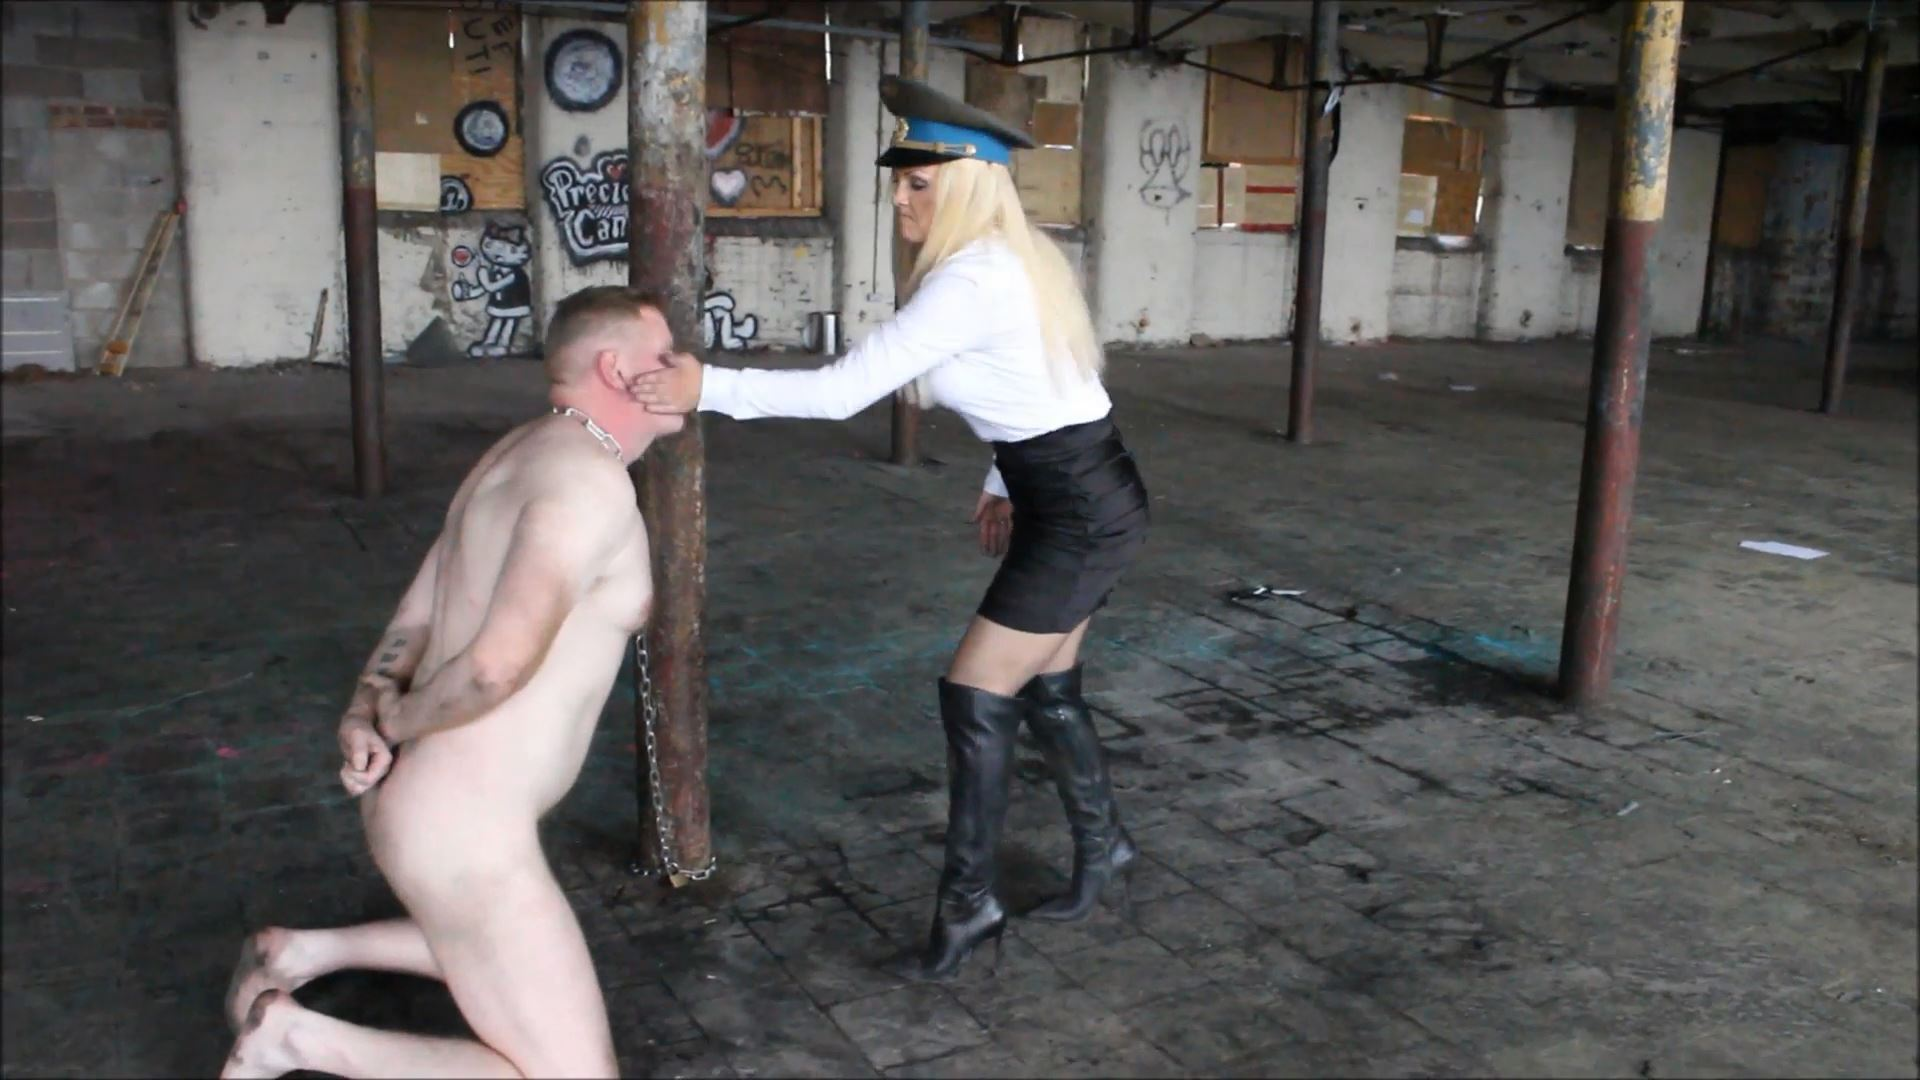 Bare hands In Scene: Hard Face Slapping Part 2 - THEBRITISHINSTITUTION - FULL HD/1080p/MP4